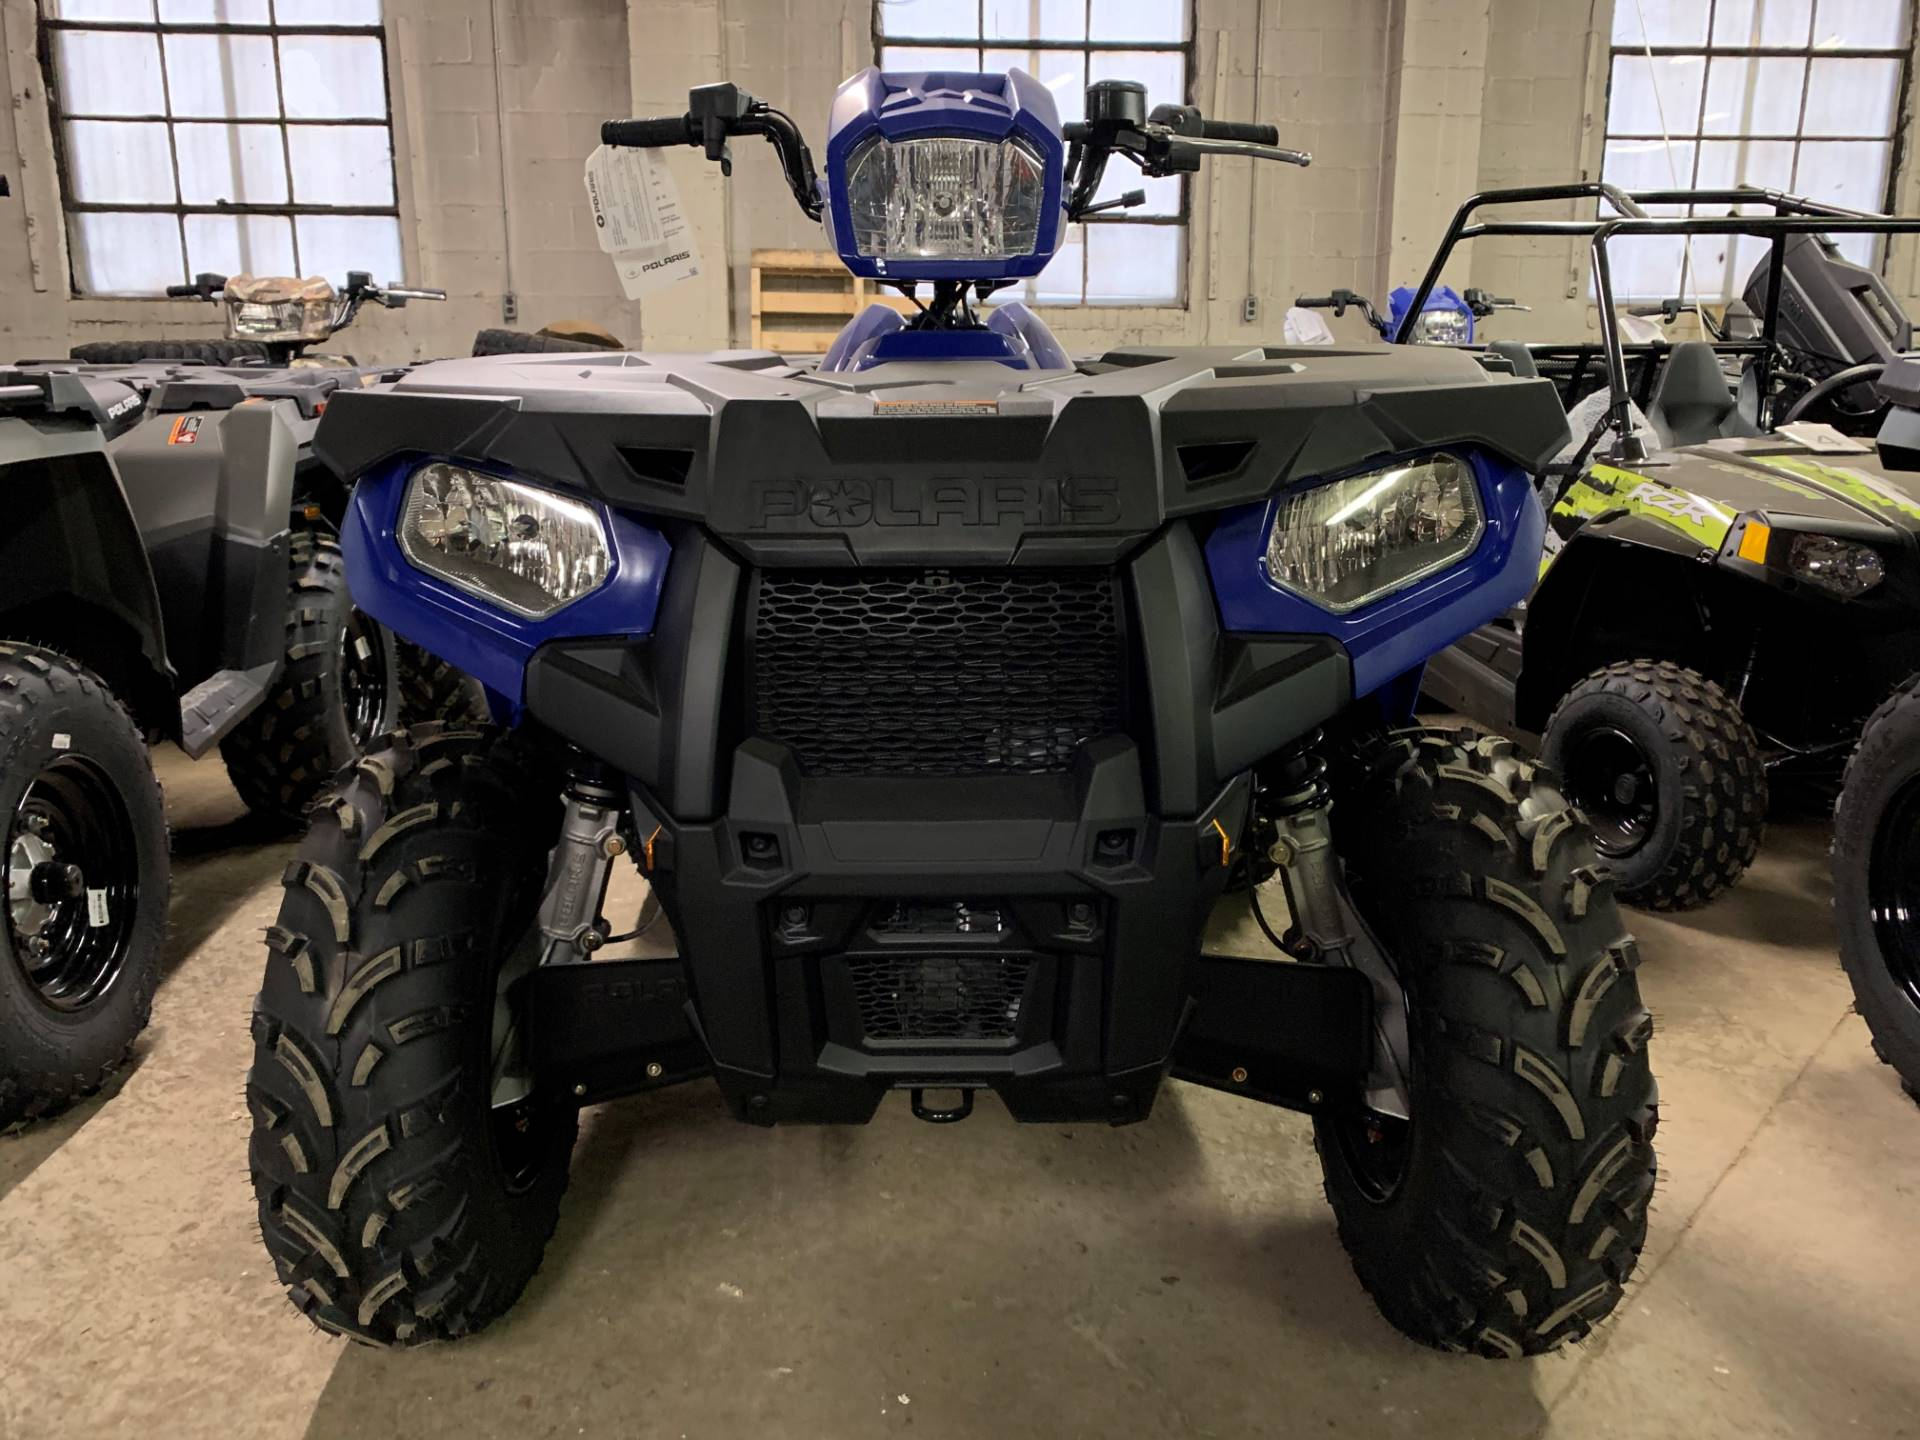 2020 Polaris Sportsman 450 H.O. in Beaver Falls, Pennsylvania - Photo 3